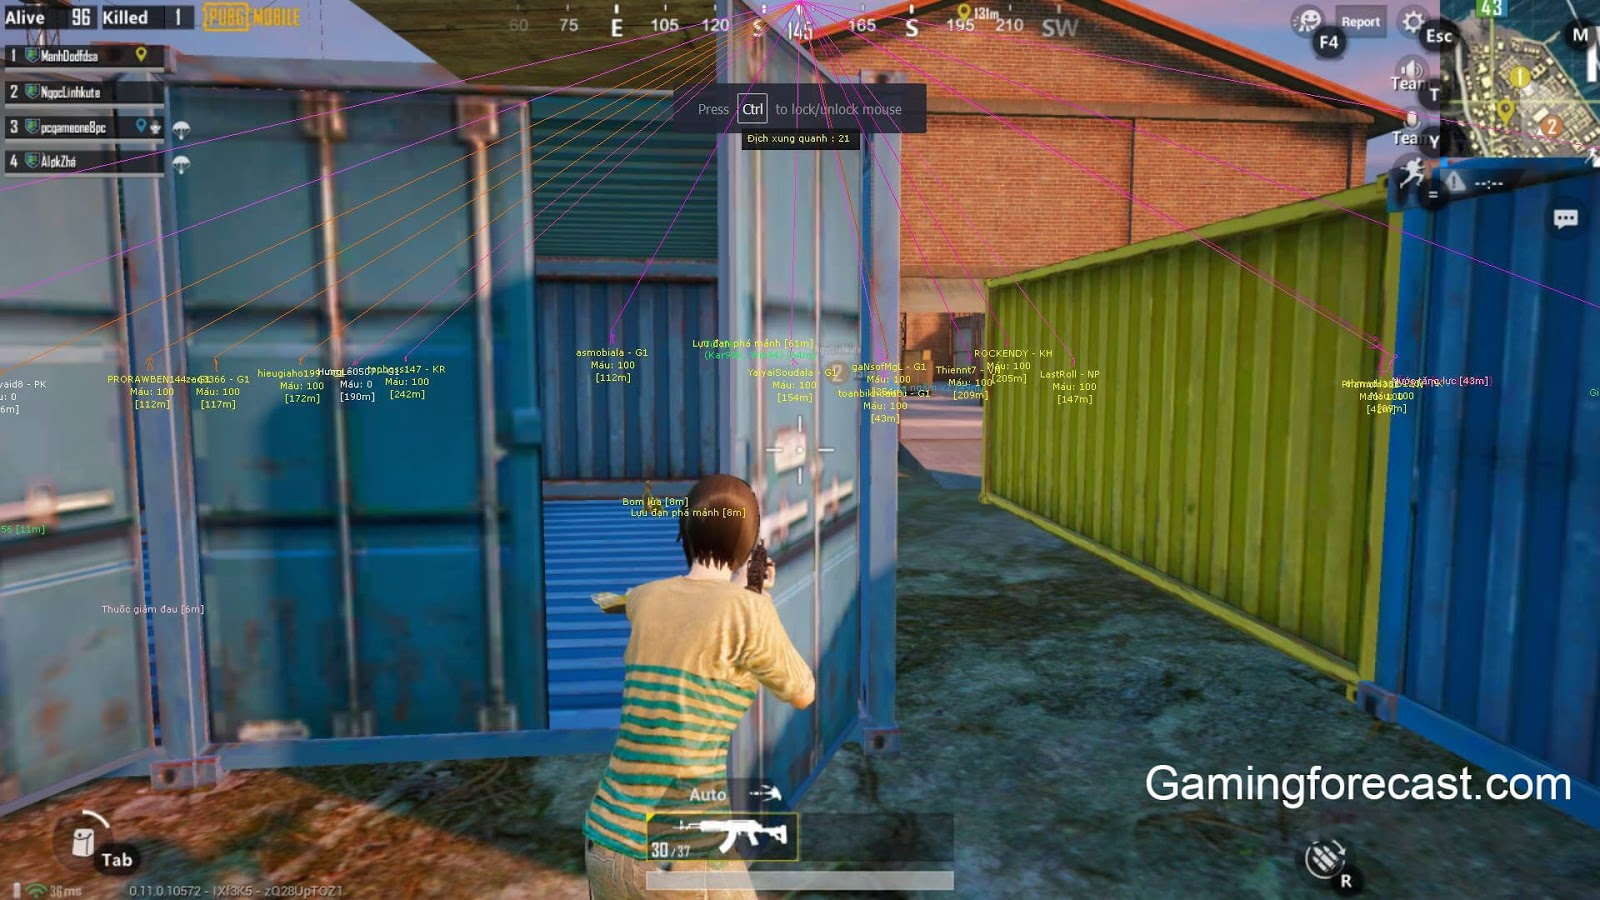 Updated PUBG Mobile Hack Undetected 2019 | Low CPU Usage